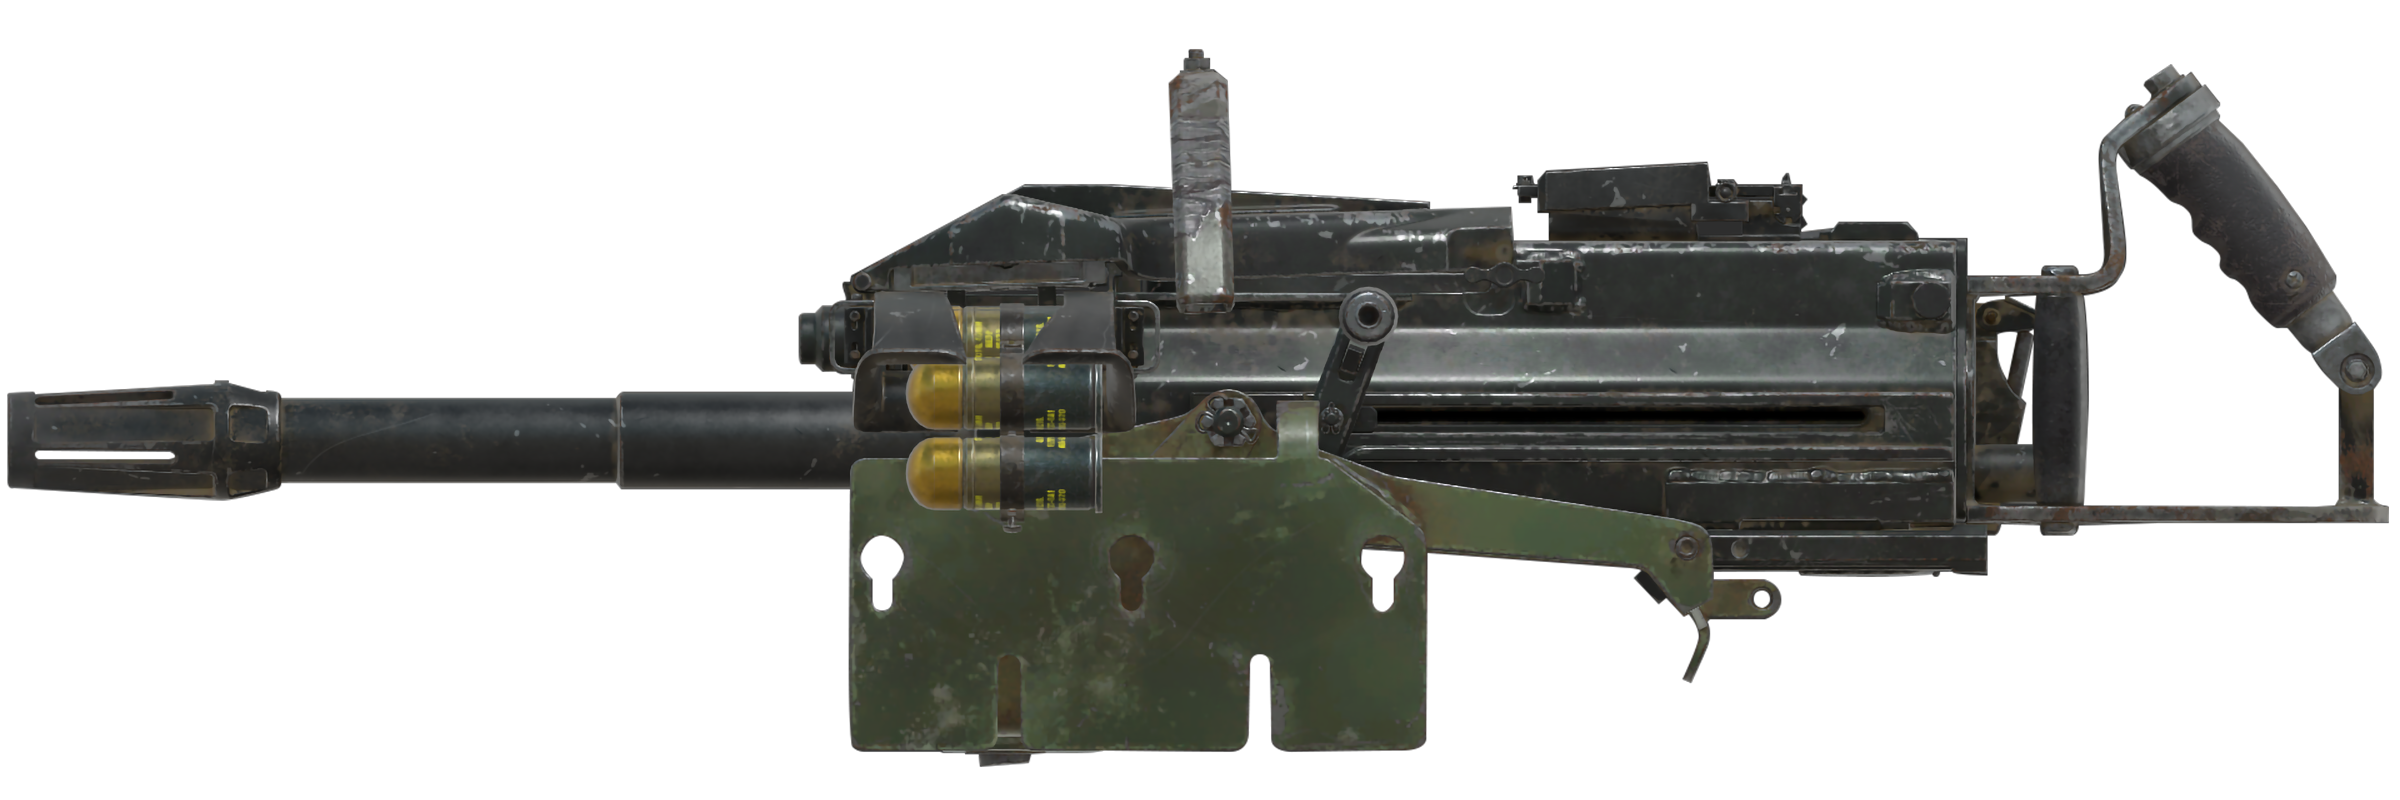 Auto grenade launcher | Fallout Wiki | FANDOM powered by Wikia